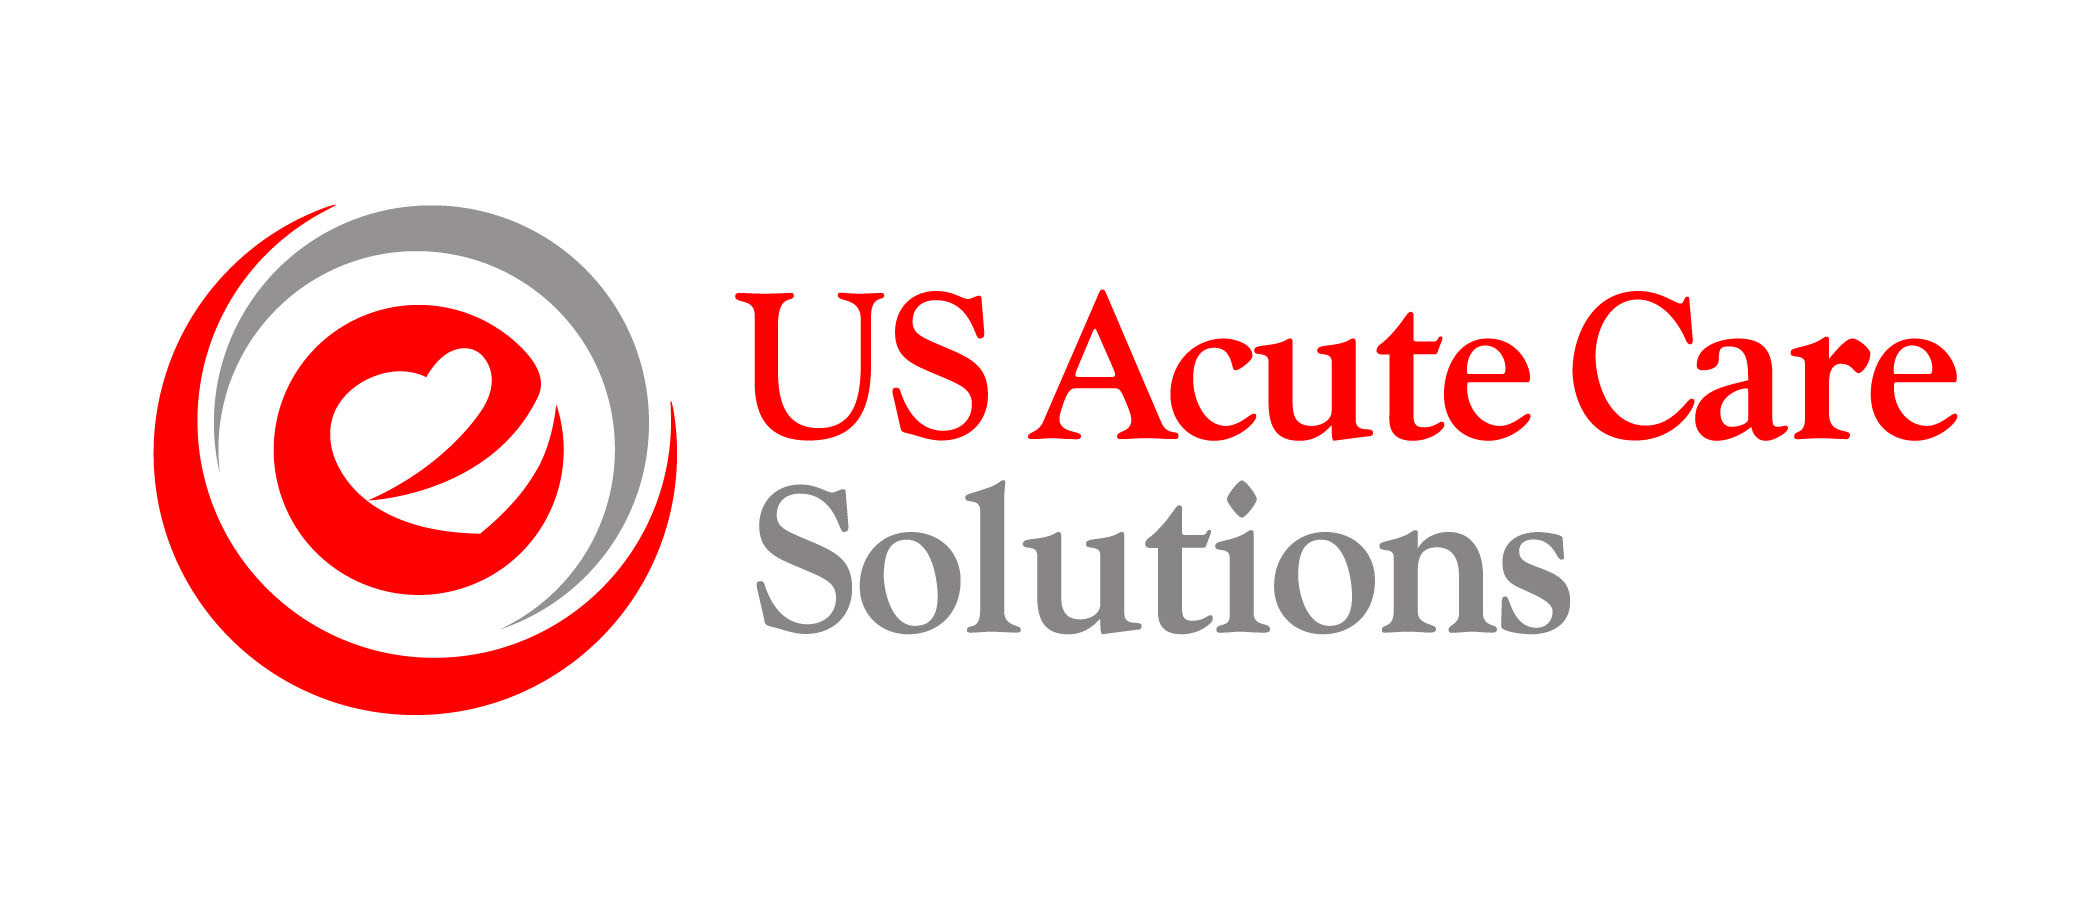 US Accute Care Solutions